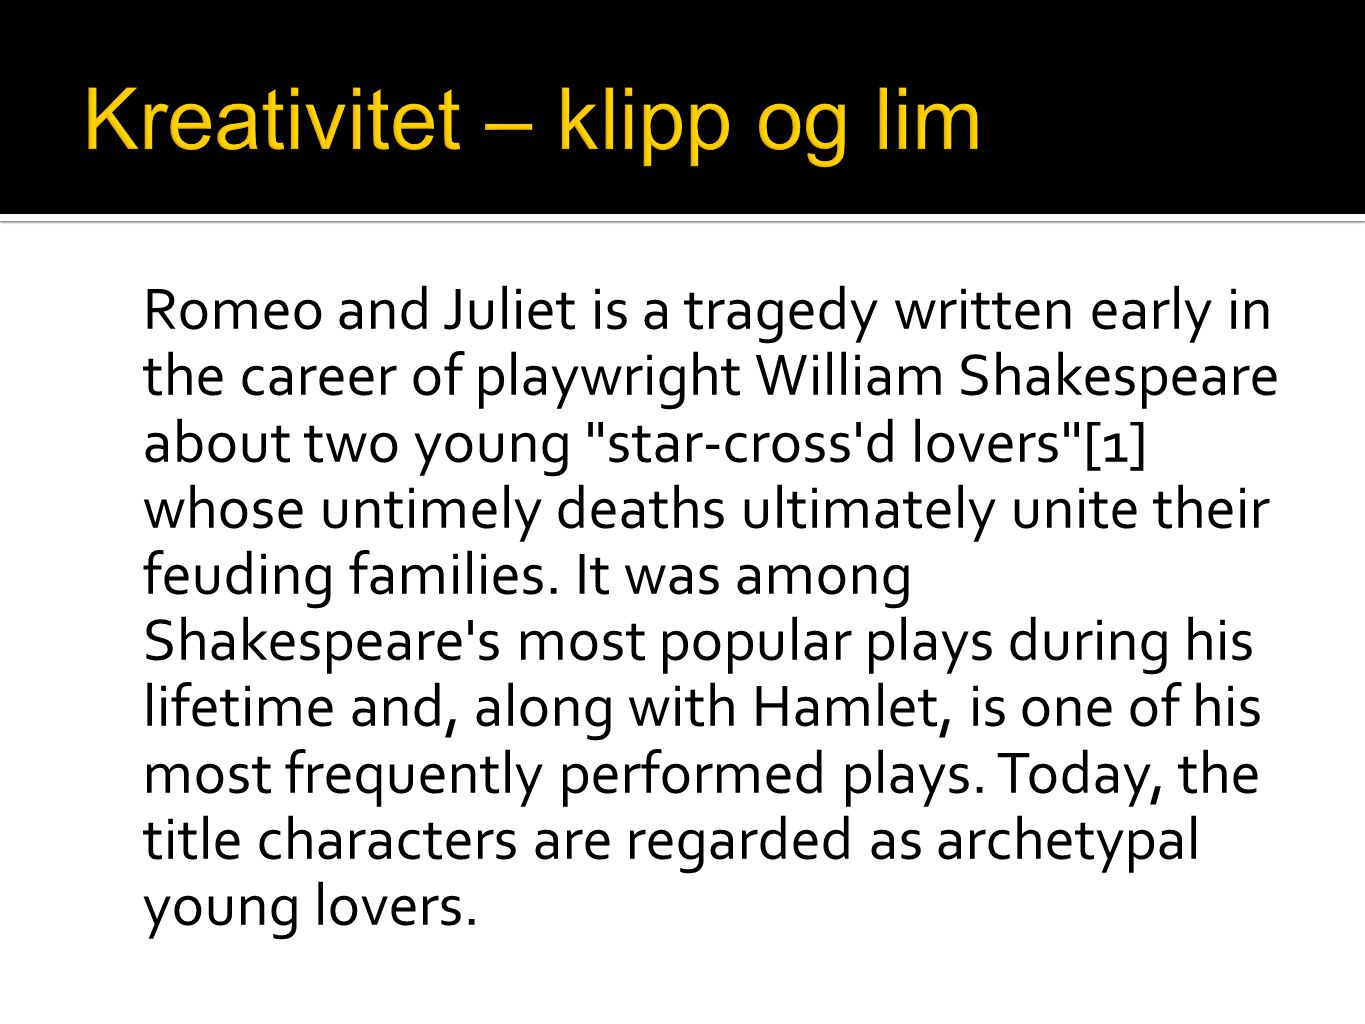 Romeo and Juliet is a tragedy written early in the career of playwright William Shakespeare about two young